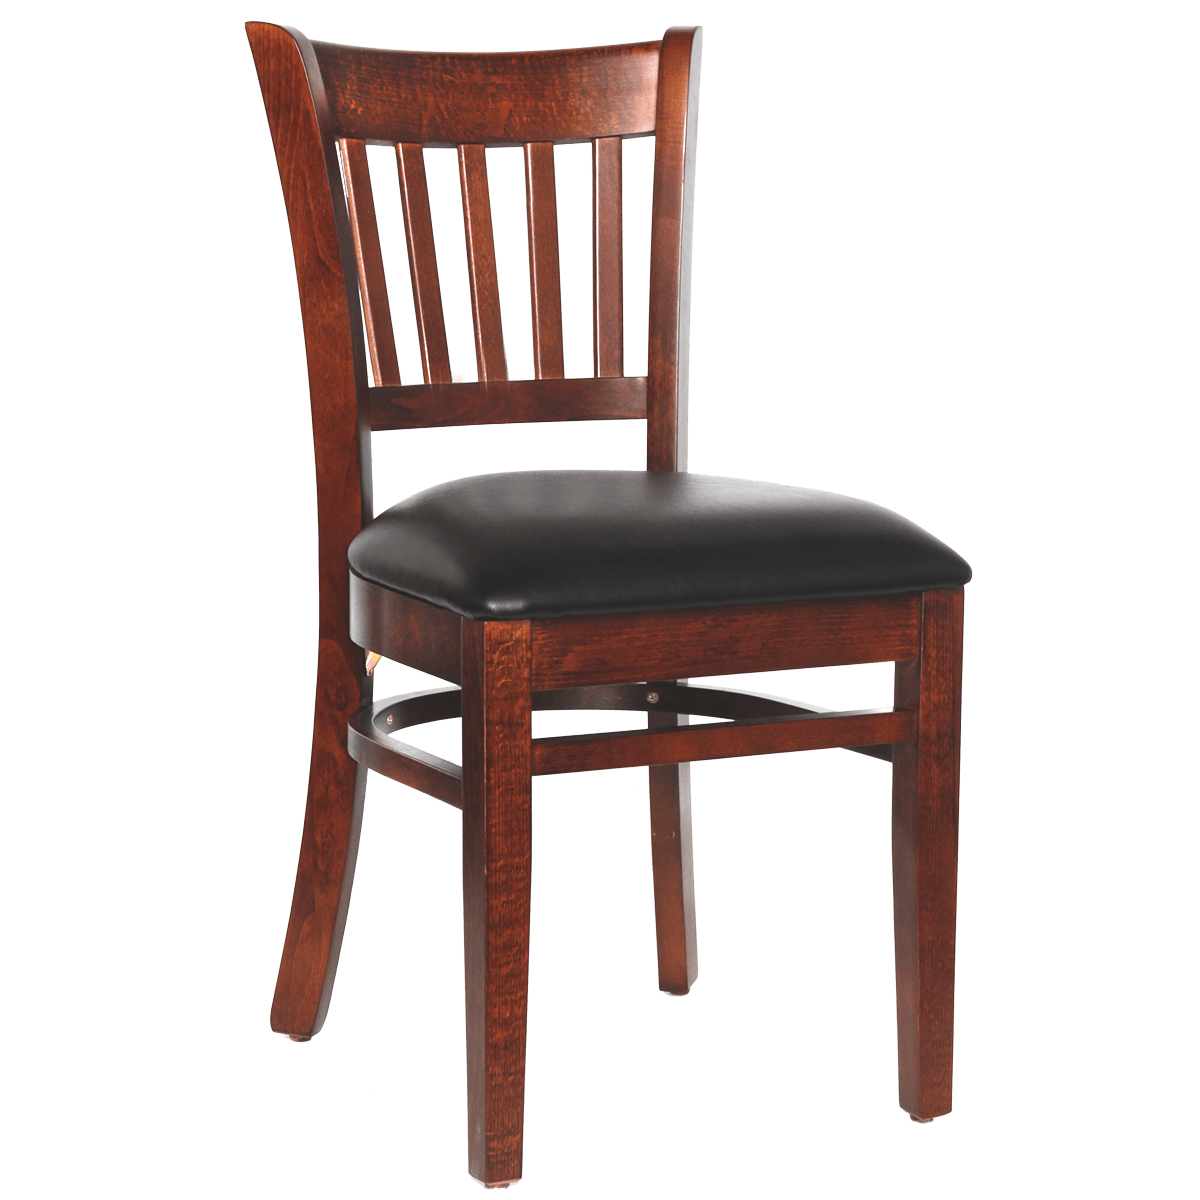 wooden slat chairs clear chiavari wood floating back chair